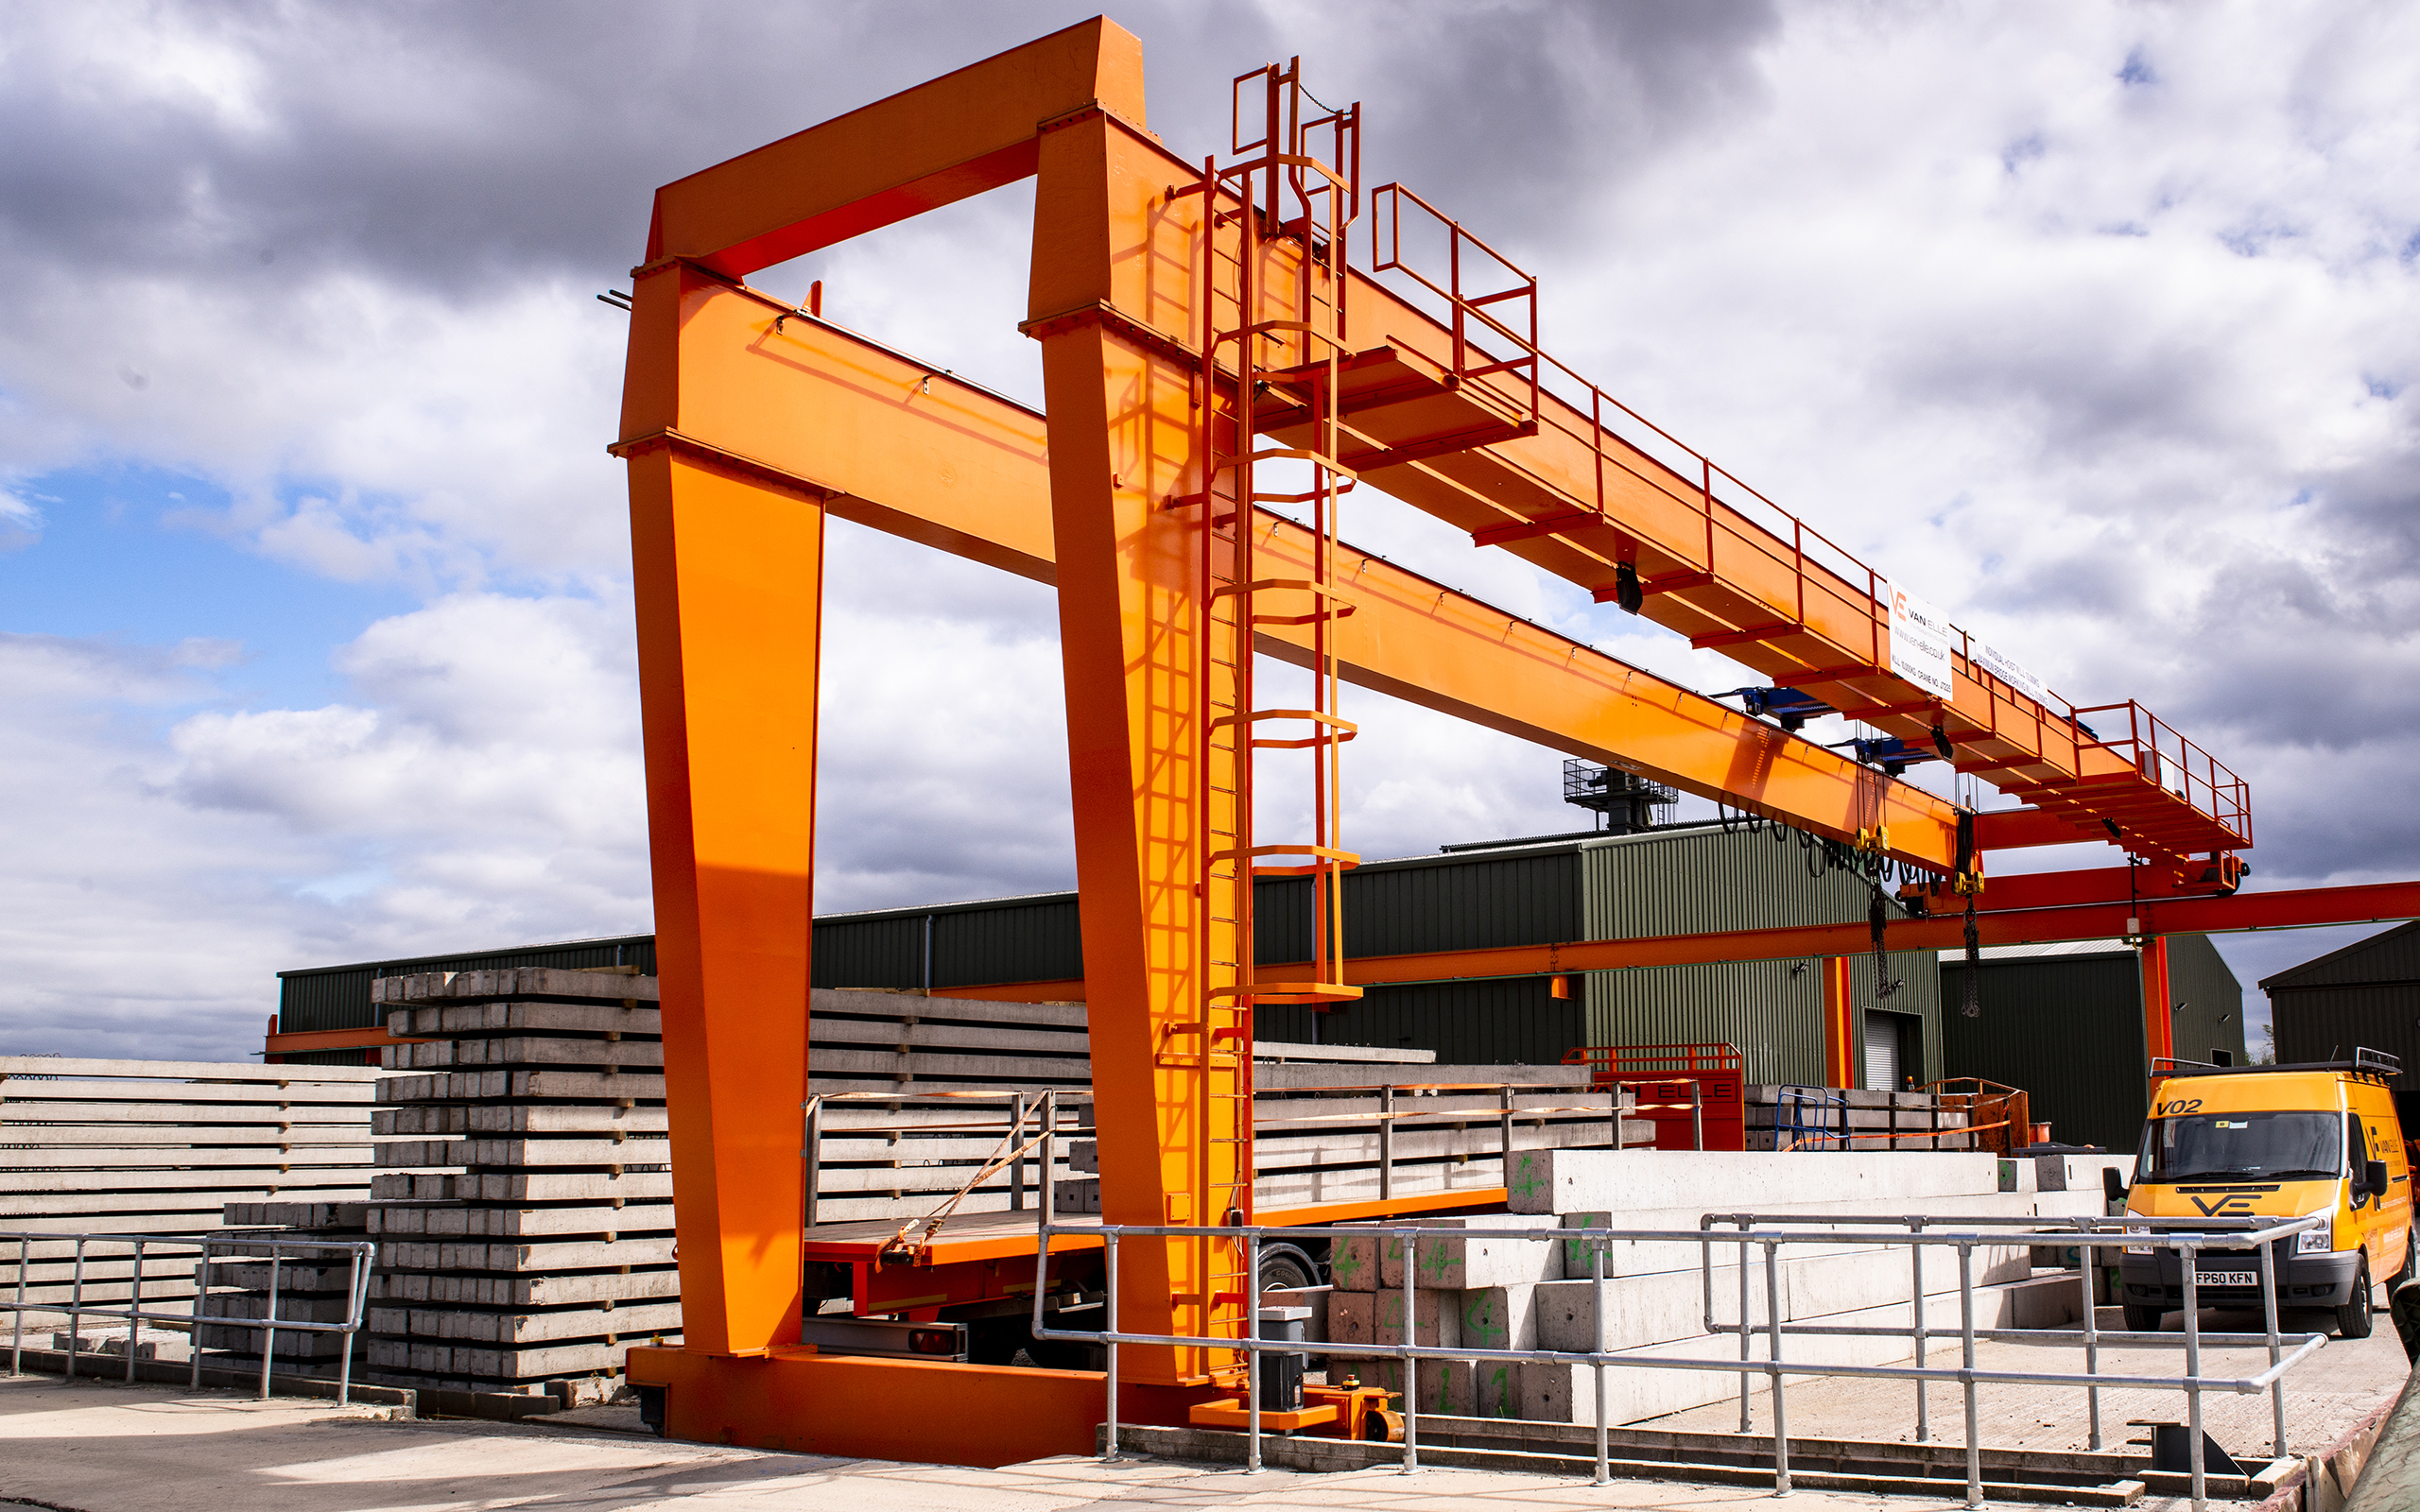 Van Elle Orange structure in their yard